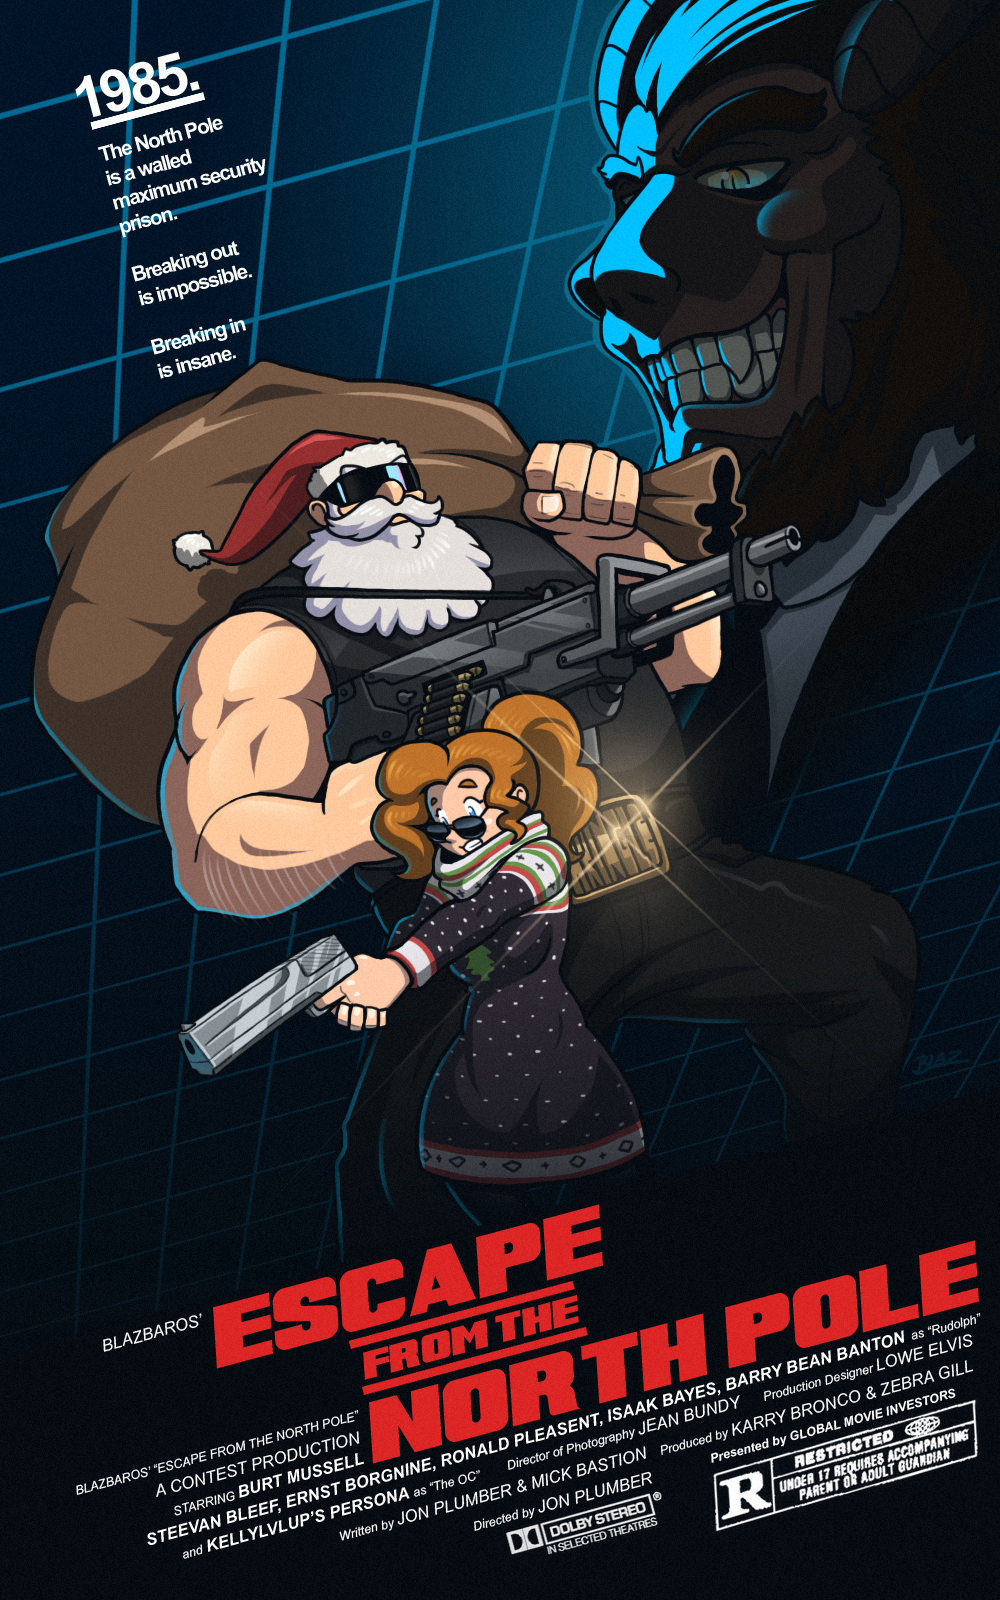 CONTEST ENTRY: Escape from the North Pole by Blazbaros